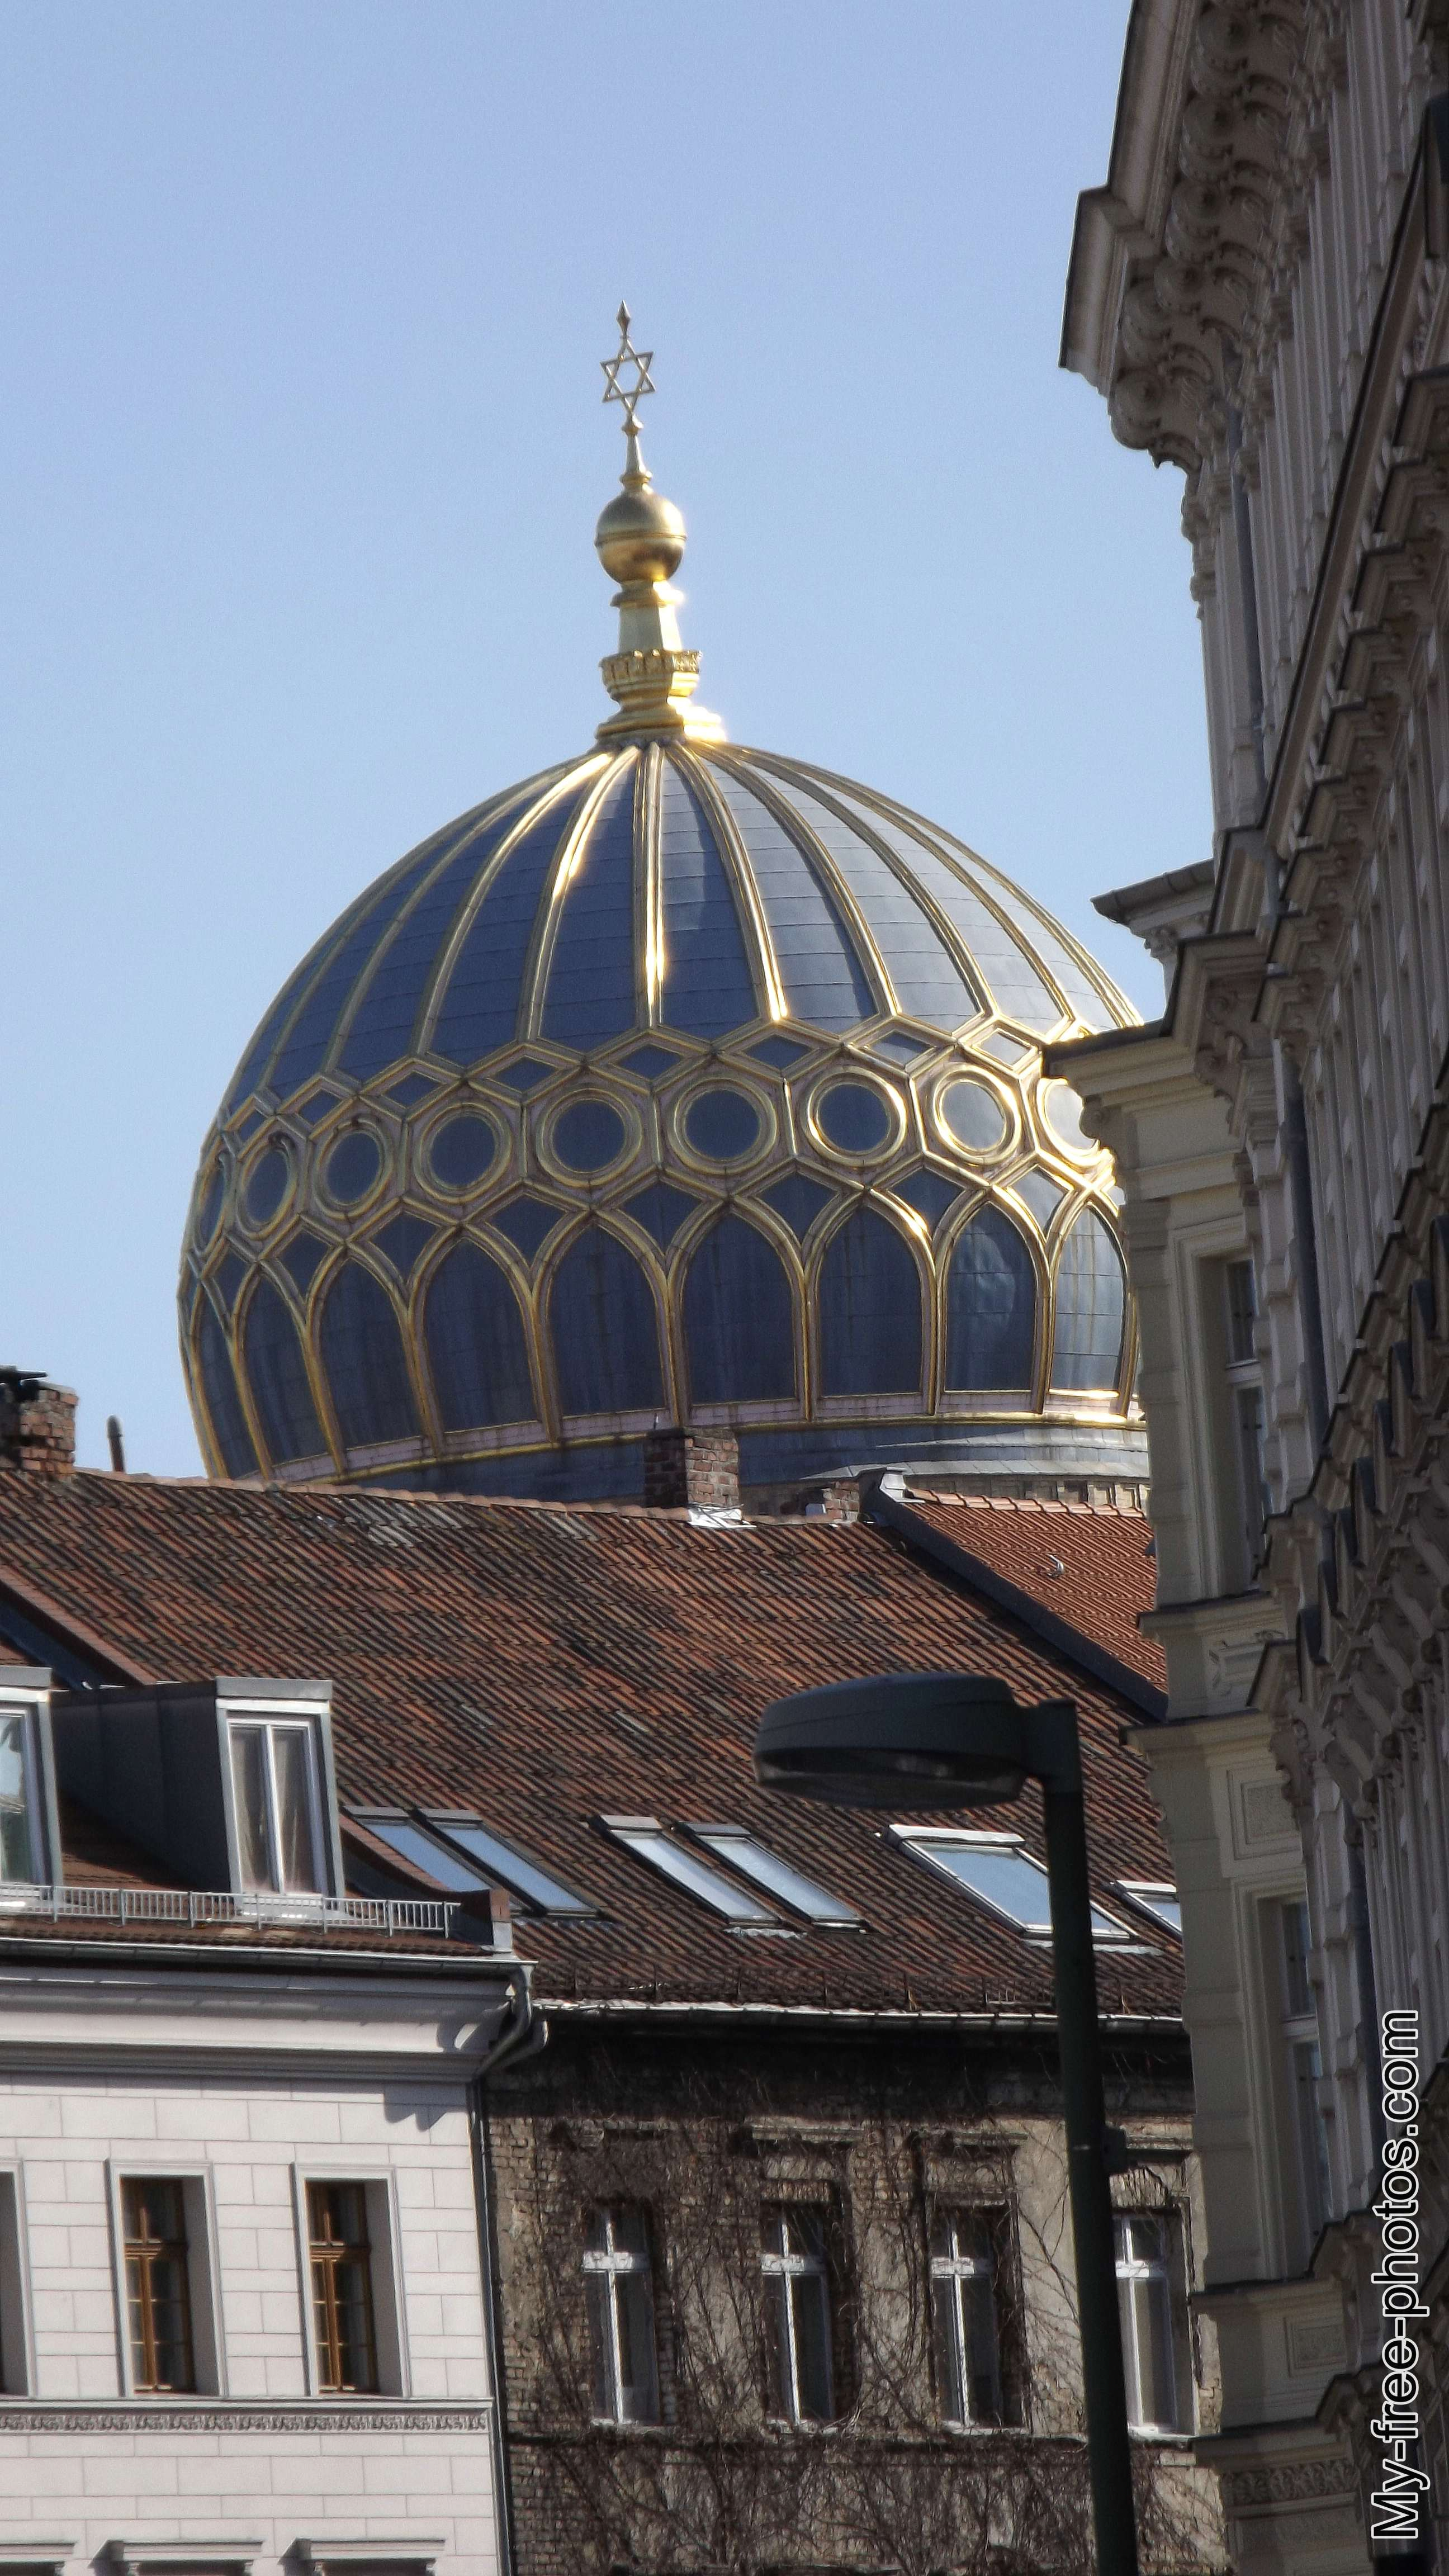 The Neue Synagoge